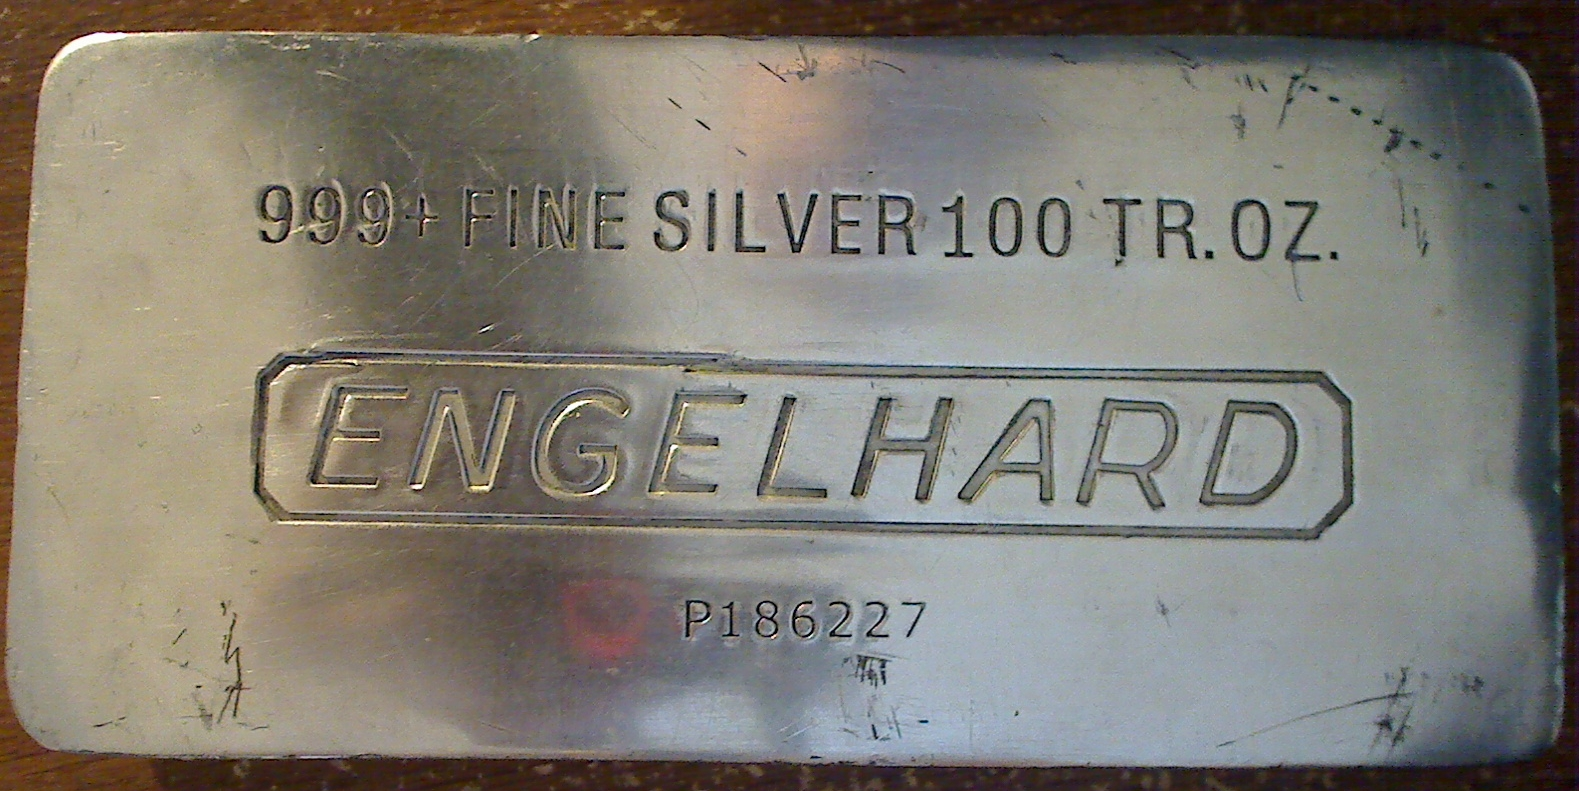 Lead 100 Ounce Silver Bars